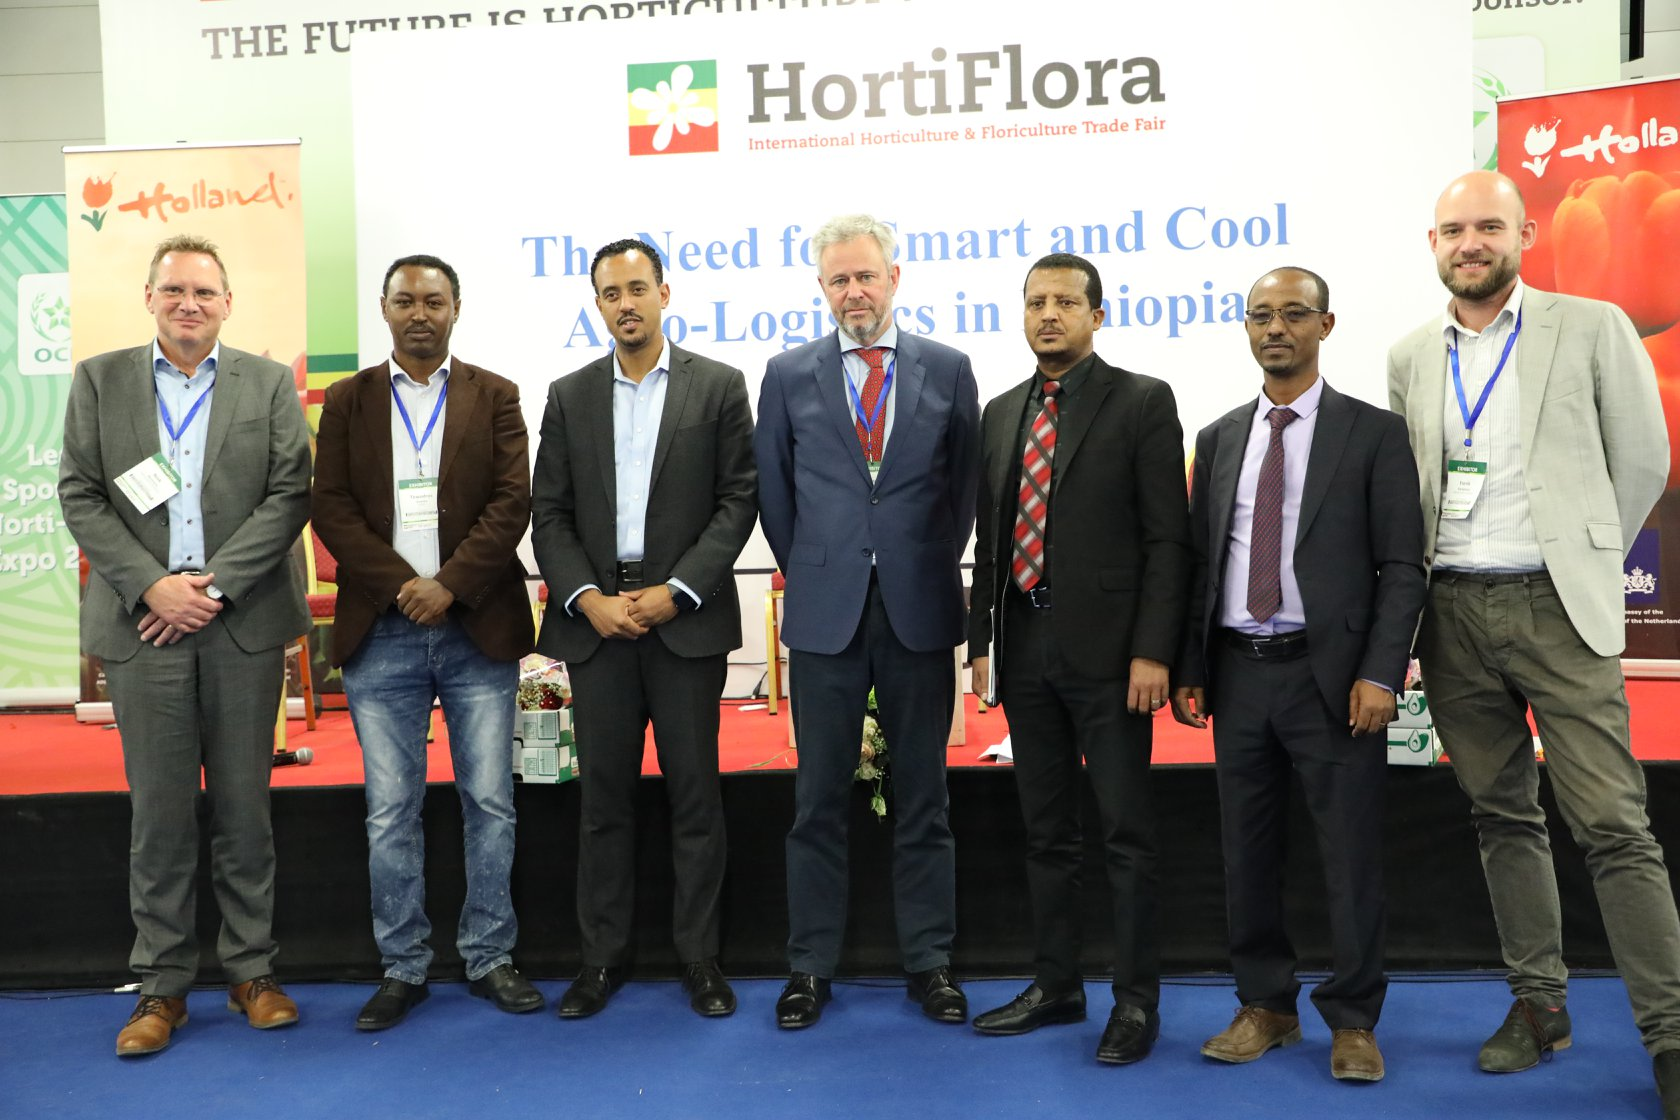 Agro-logistics described critical part of horticulture sector